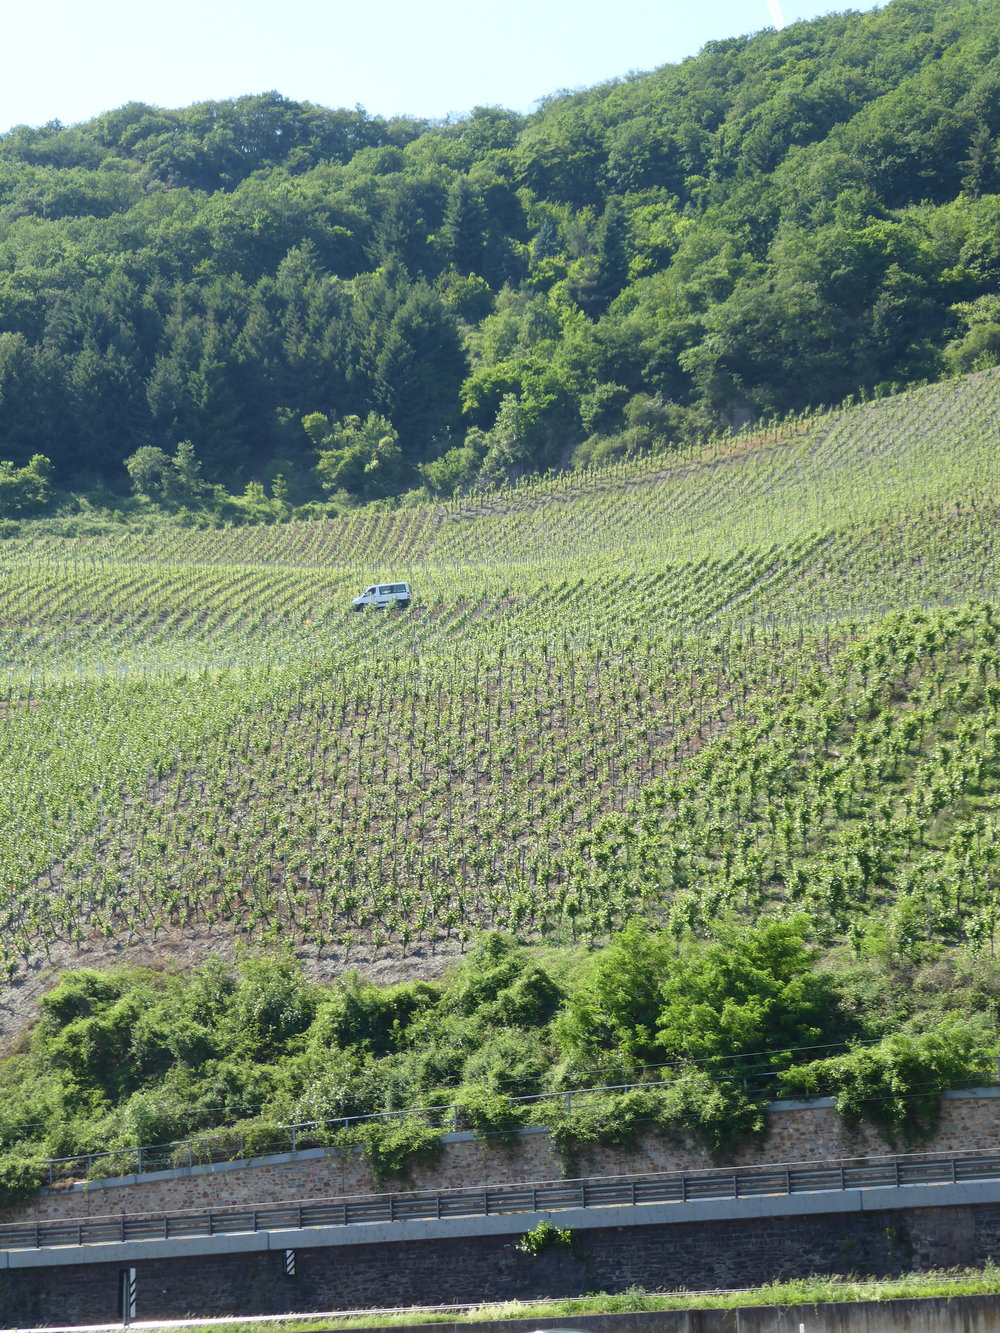 Very steep cultivation of wine. It's mostly white and you don't have to pay much for something good and dry.